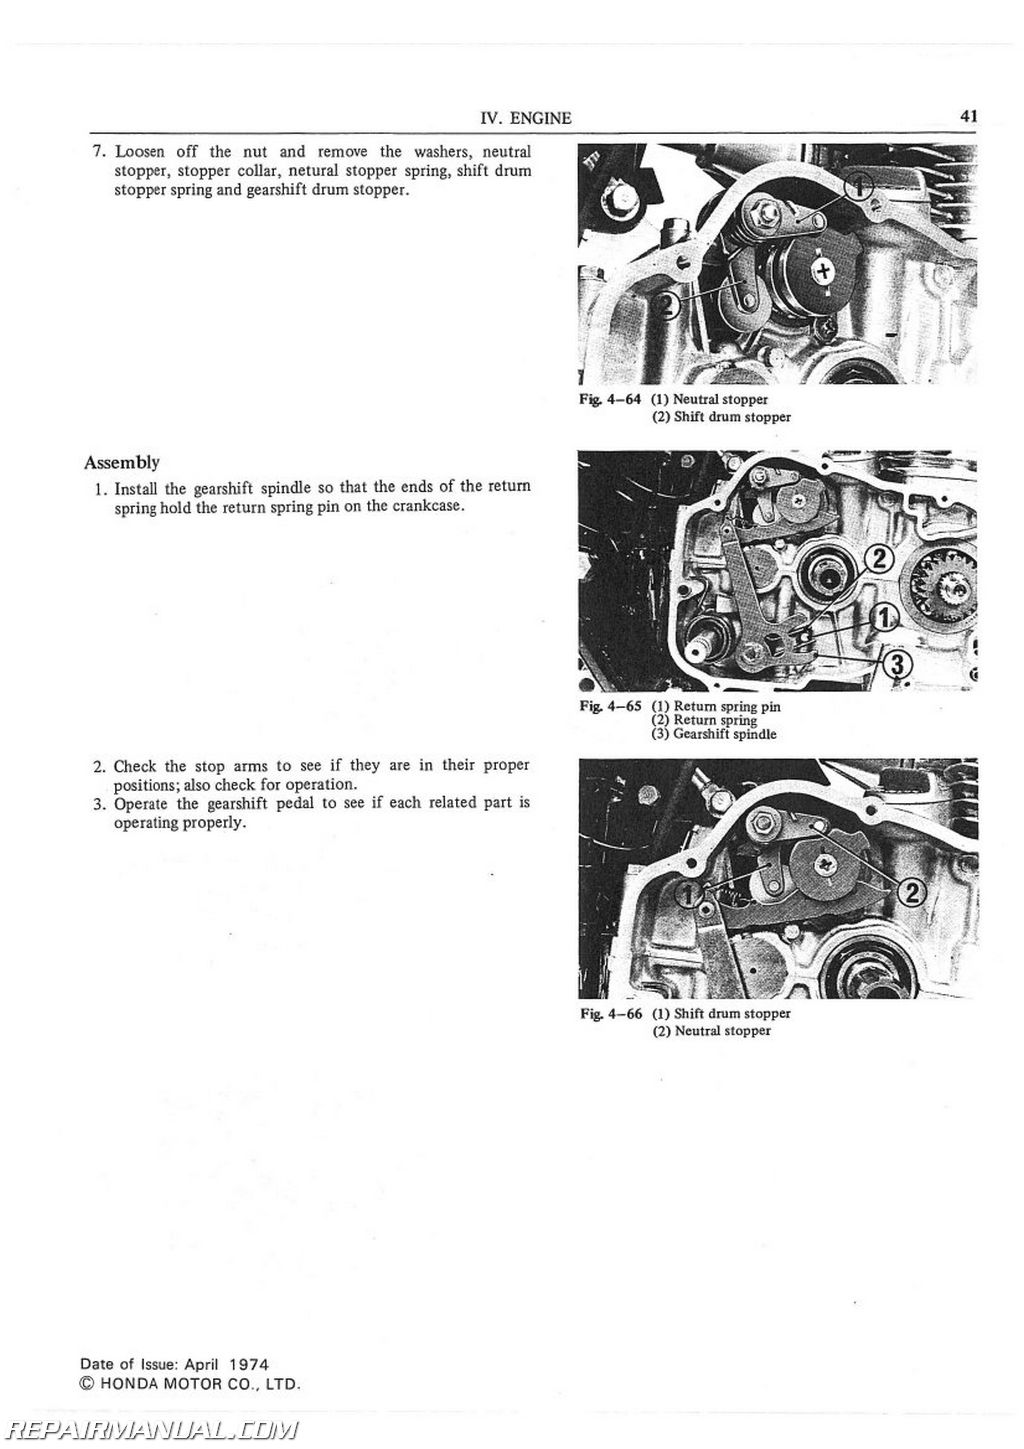 Honda Cbx Motorcycle Engine Schematics as well Wiring Diagram For A 1970 Honda Ct70 besides Harley Davidson Motorcycles Parts in addition 1974 Cb 500t Wiring Diagram moreover Car Vectors Page 17. on cafe racer wiring